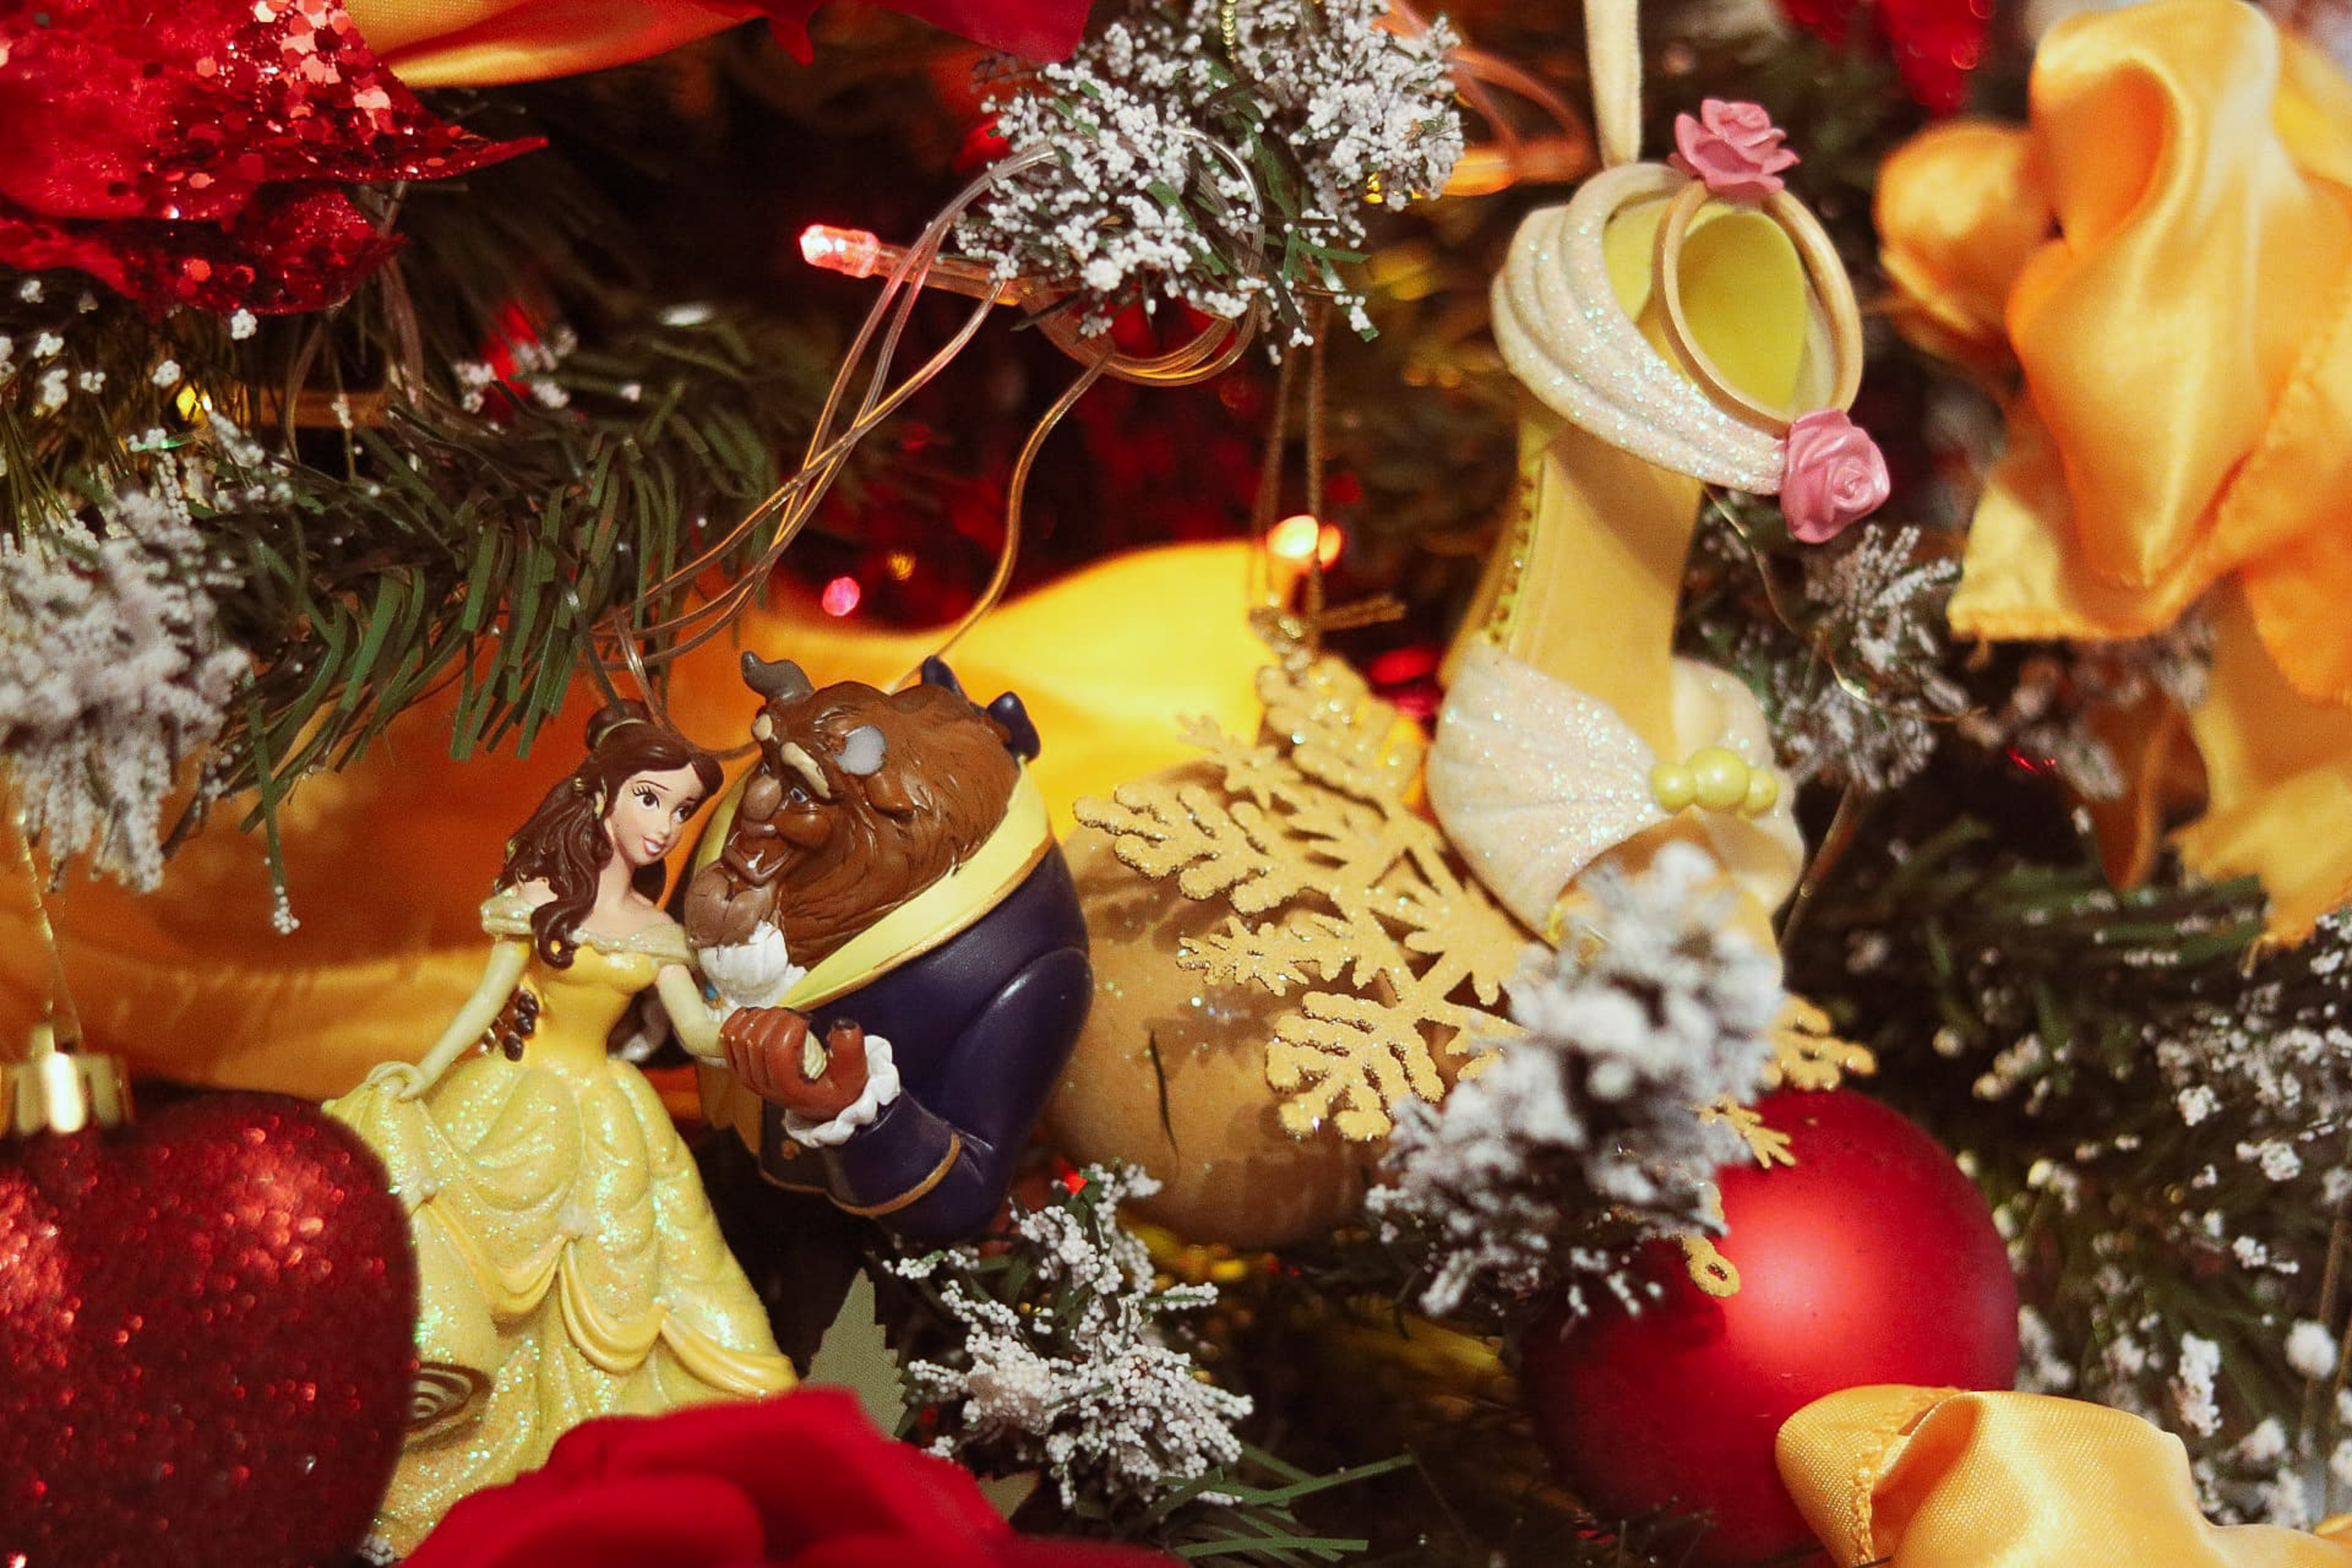 As well as the hand customised baubles Sian spent £120 on official Disney baubles. (Credit: Mercury Press)